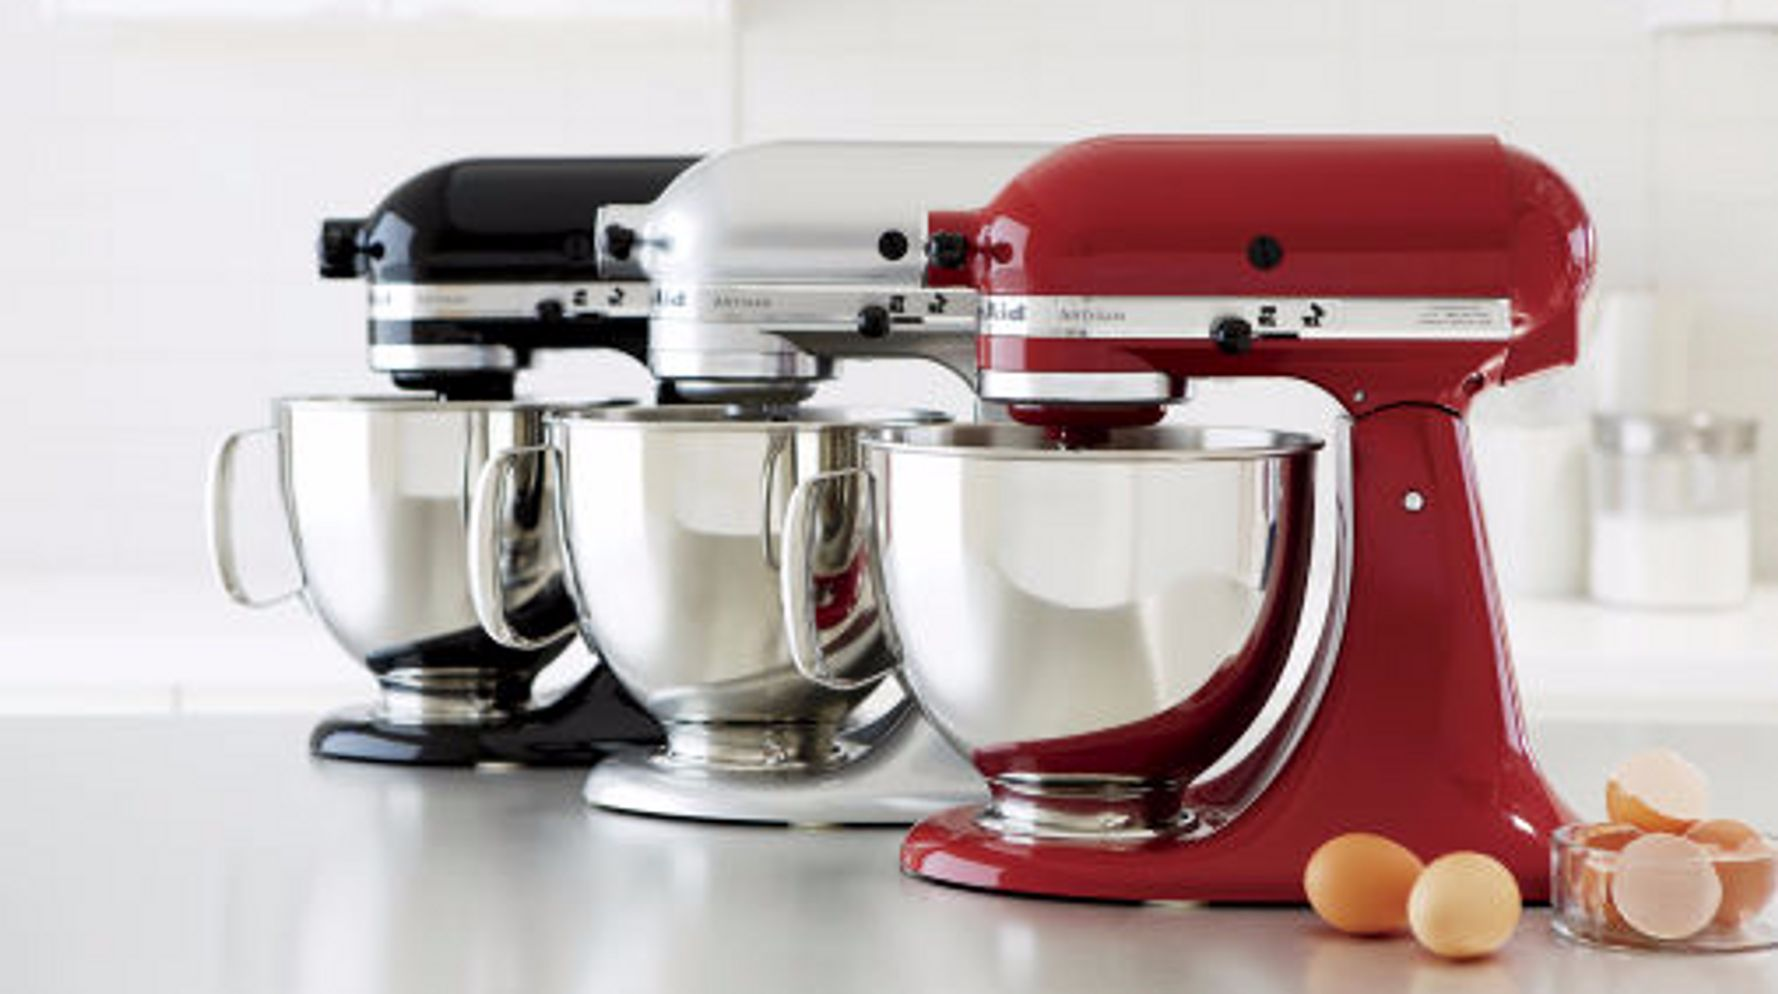 Where To Buy A KitchenAid Mixer For Cheap On Black Friday